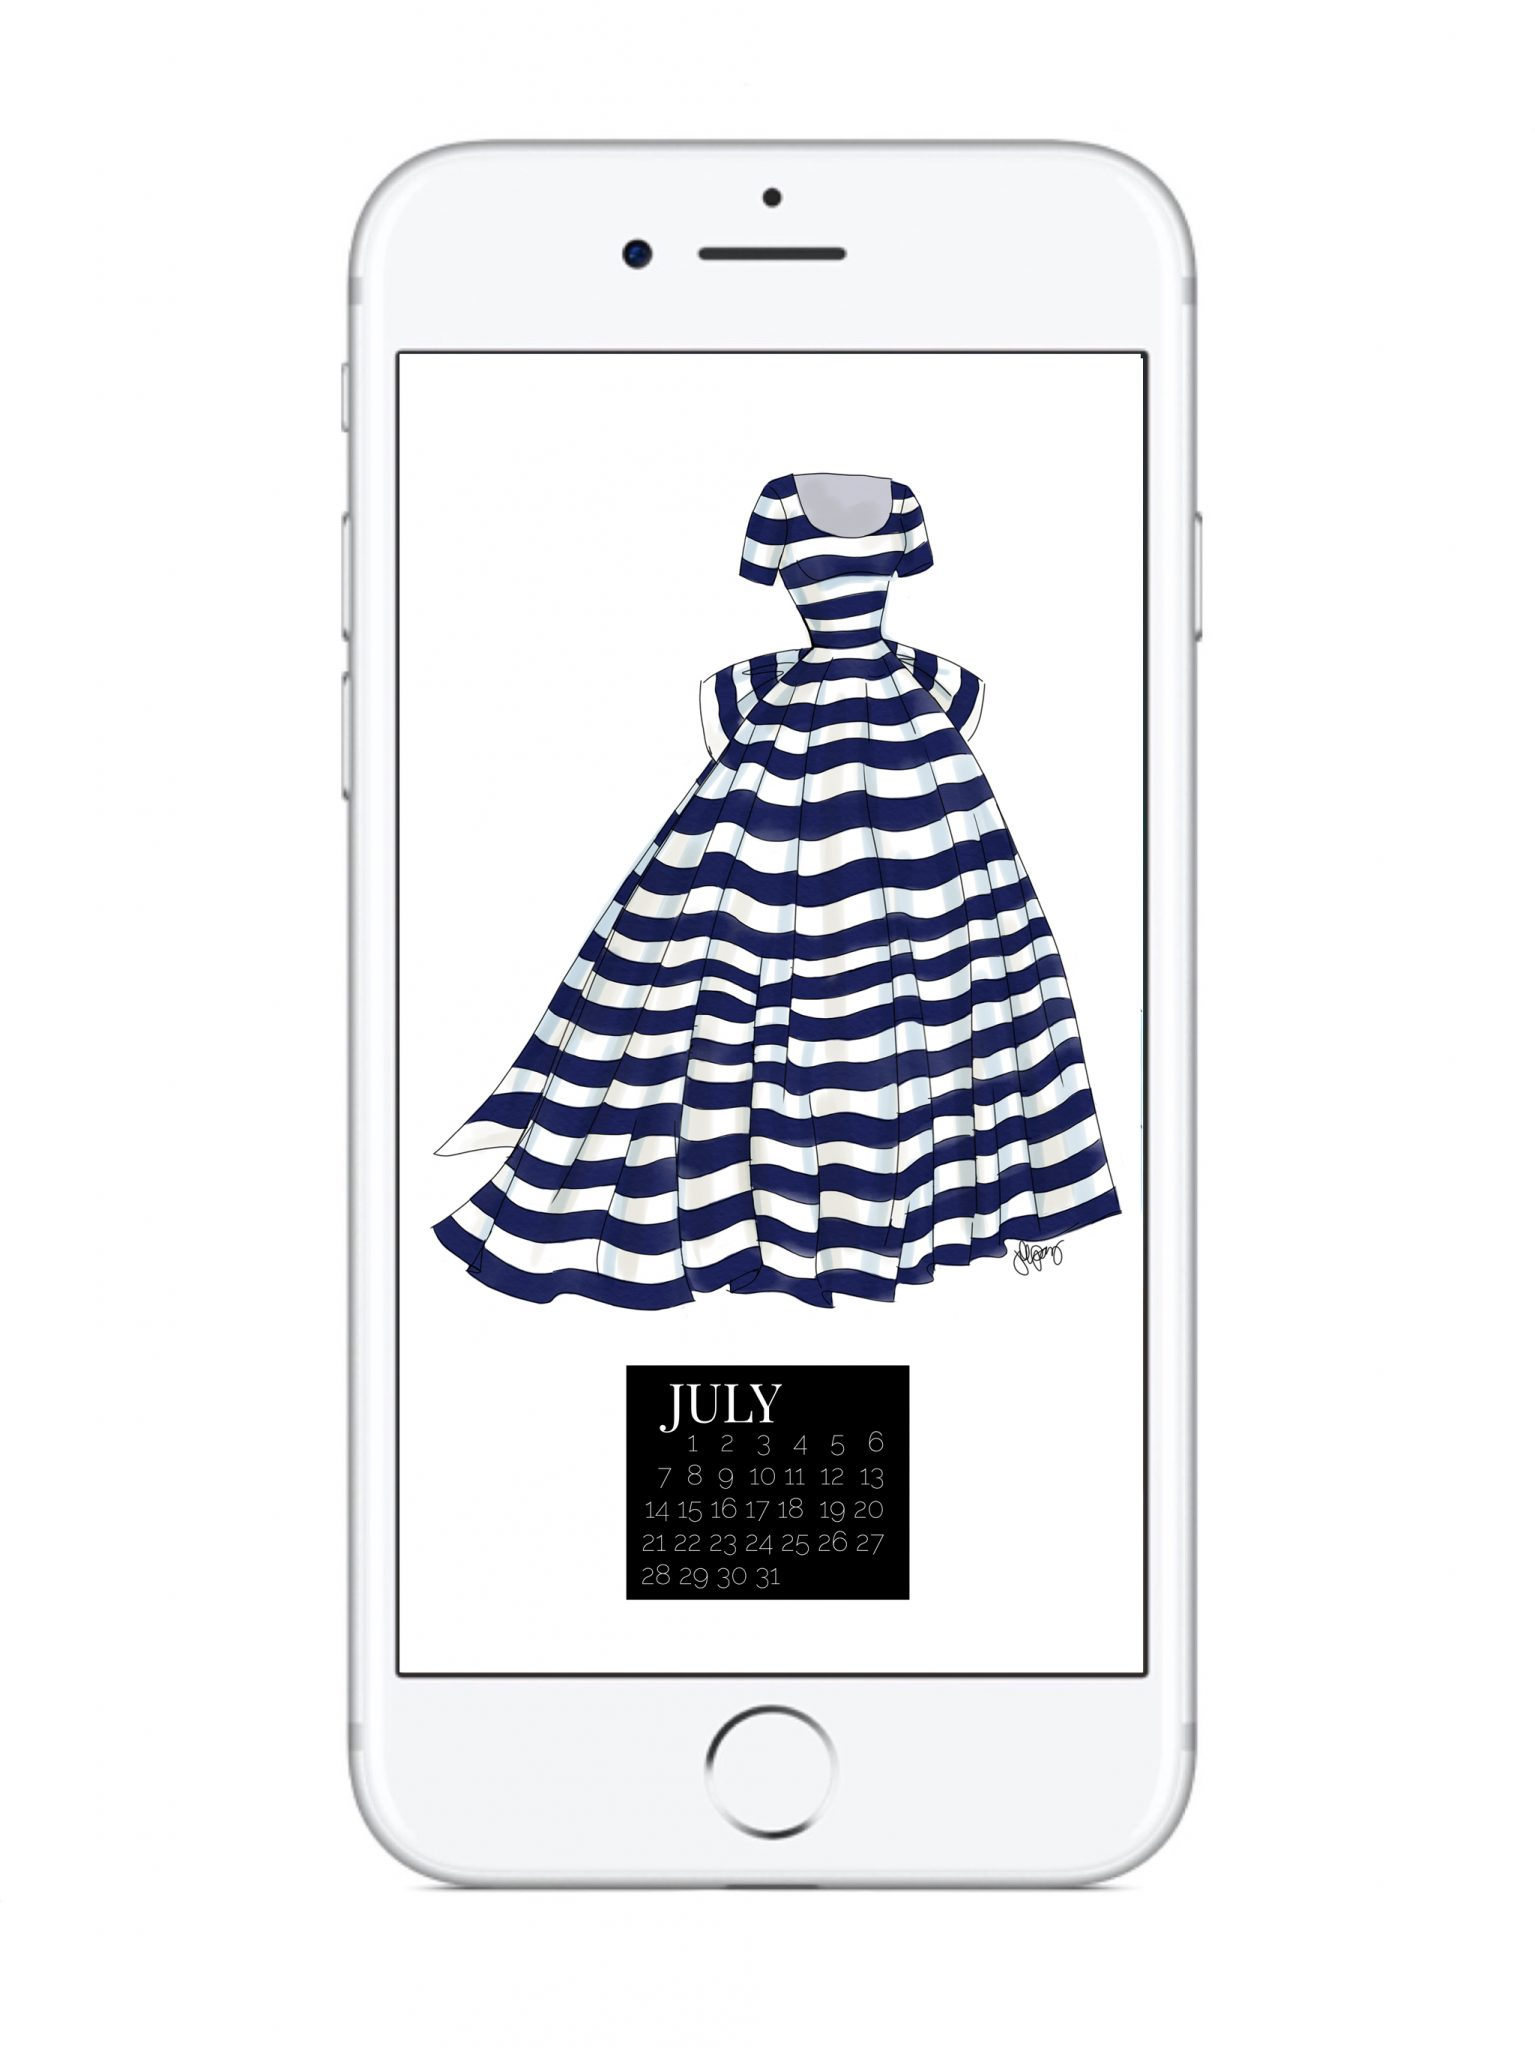 The July Dress Free Download